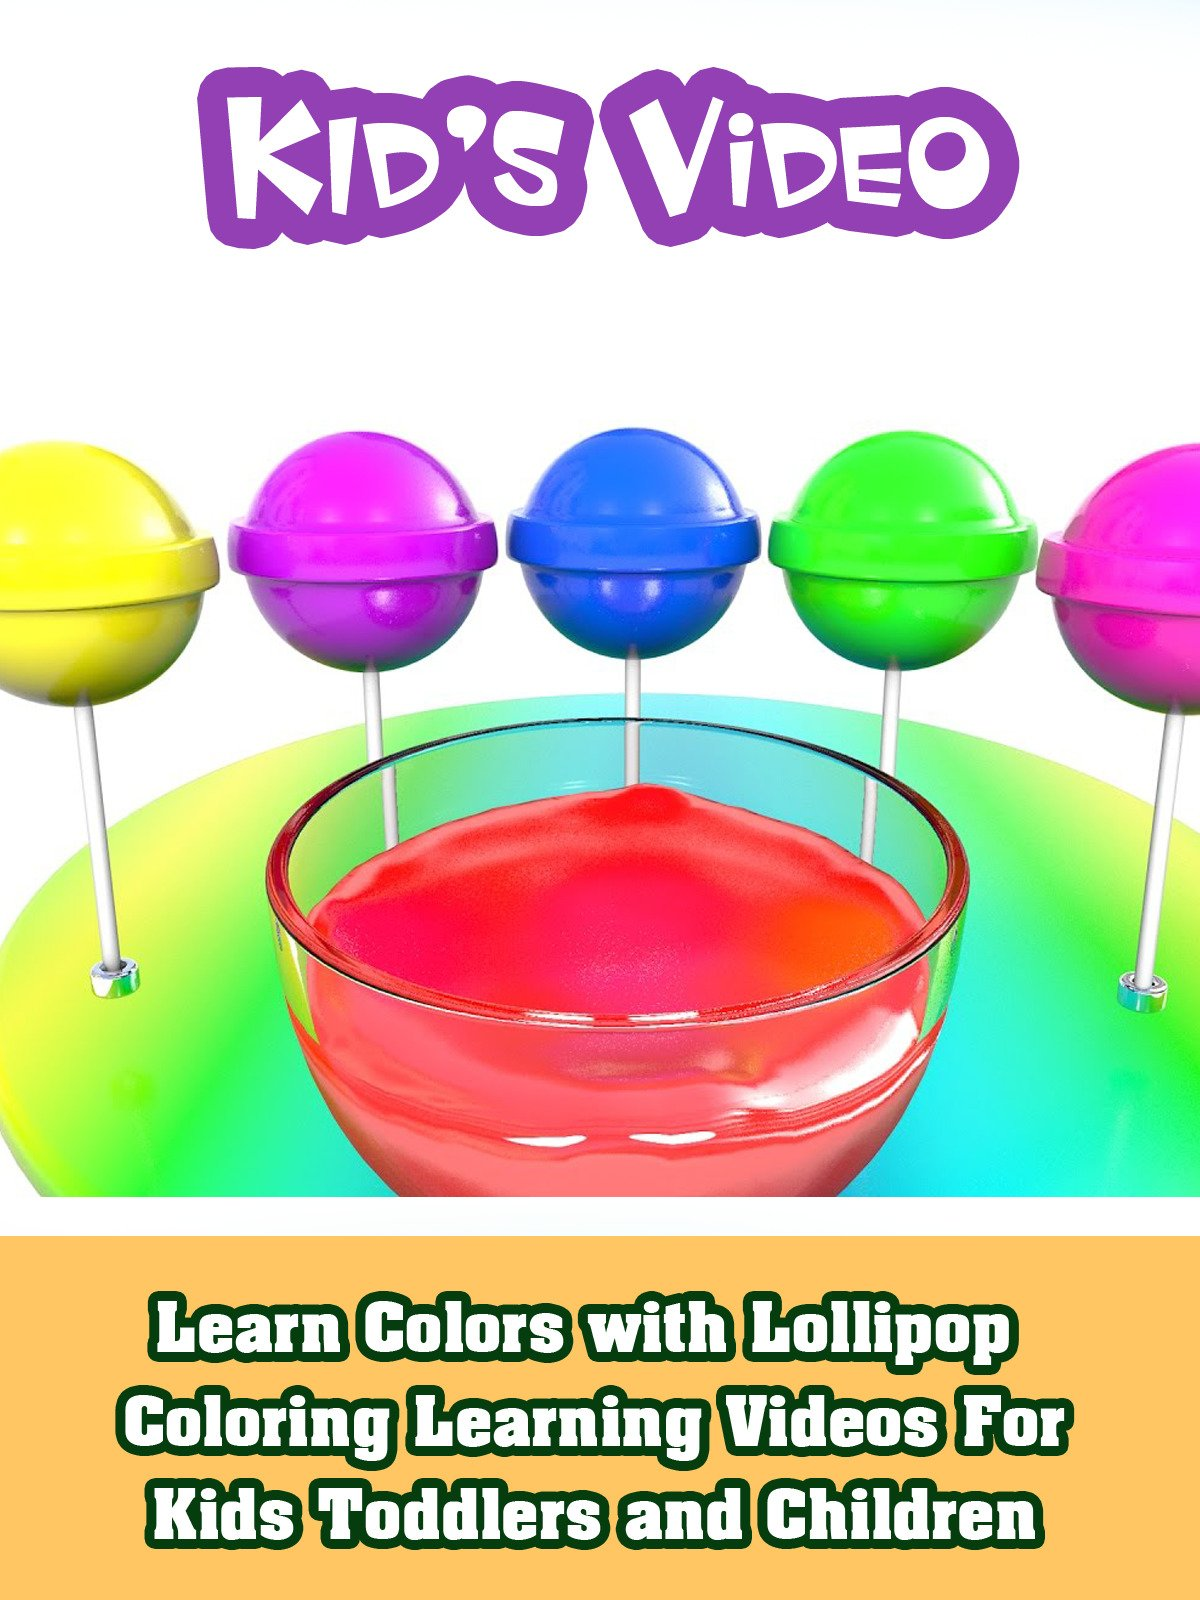 Learn Colors with Lollipop Coloring Learning Videos For Kids Toddlers and Children on Amazon Prime Instant Video UK